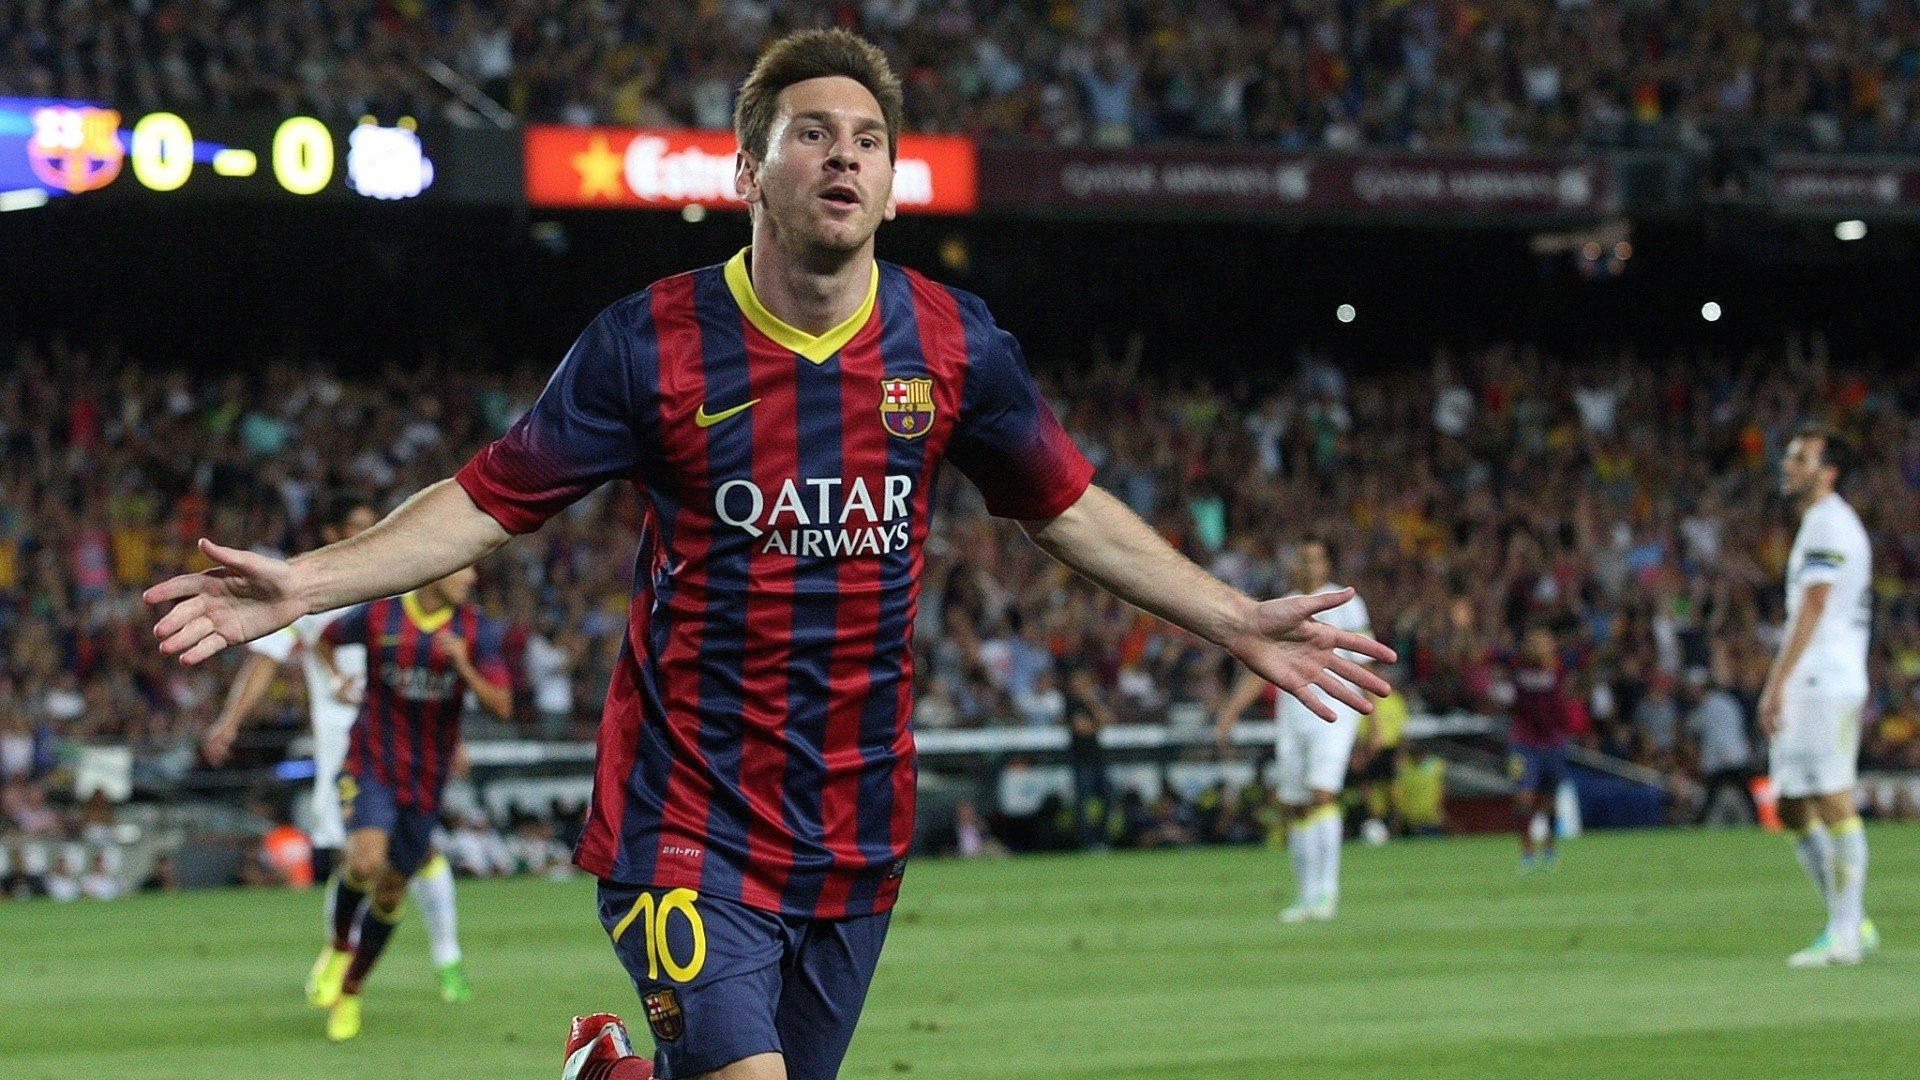 Lionel Messi, A classic player